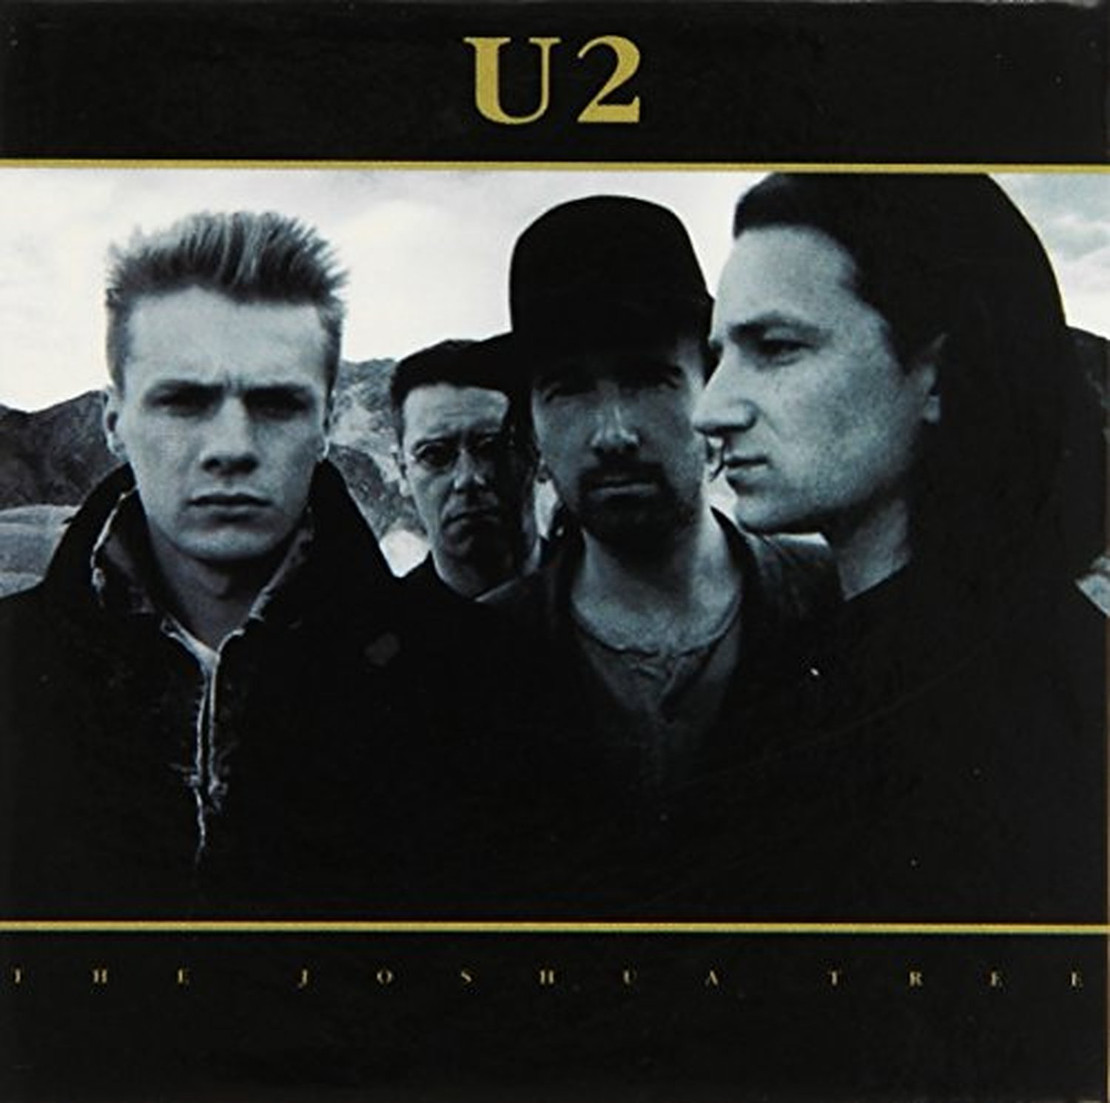 U2 to Perform Joshua Tree for Album's 30th Anniversary